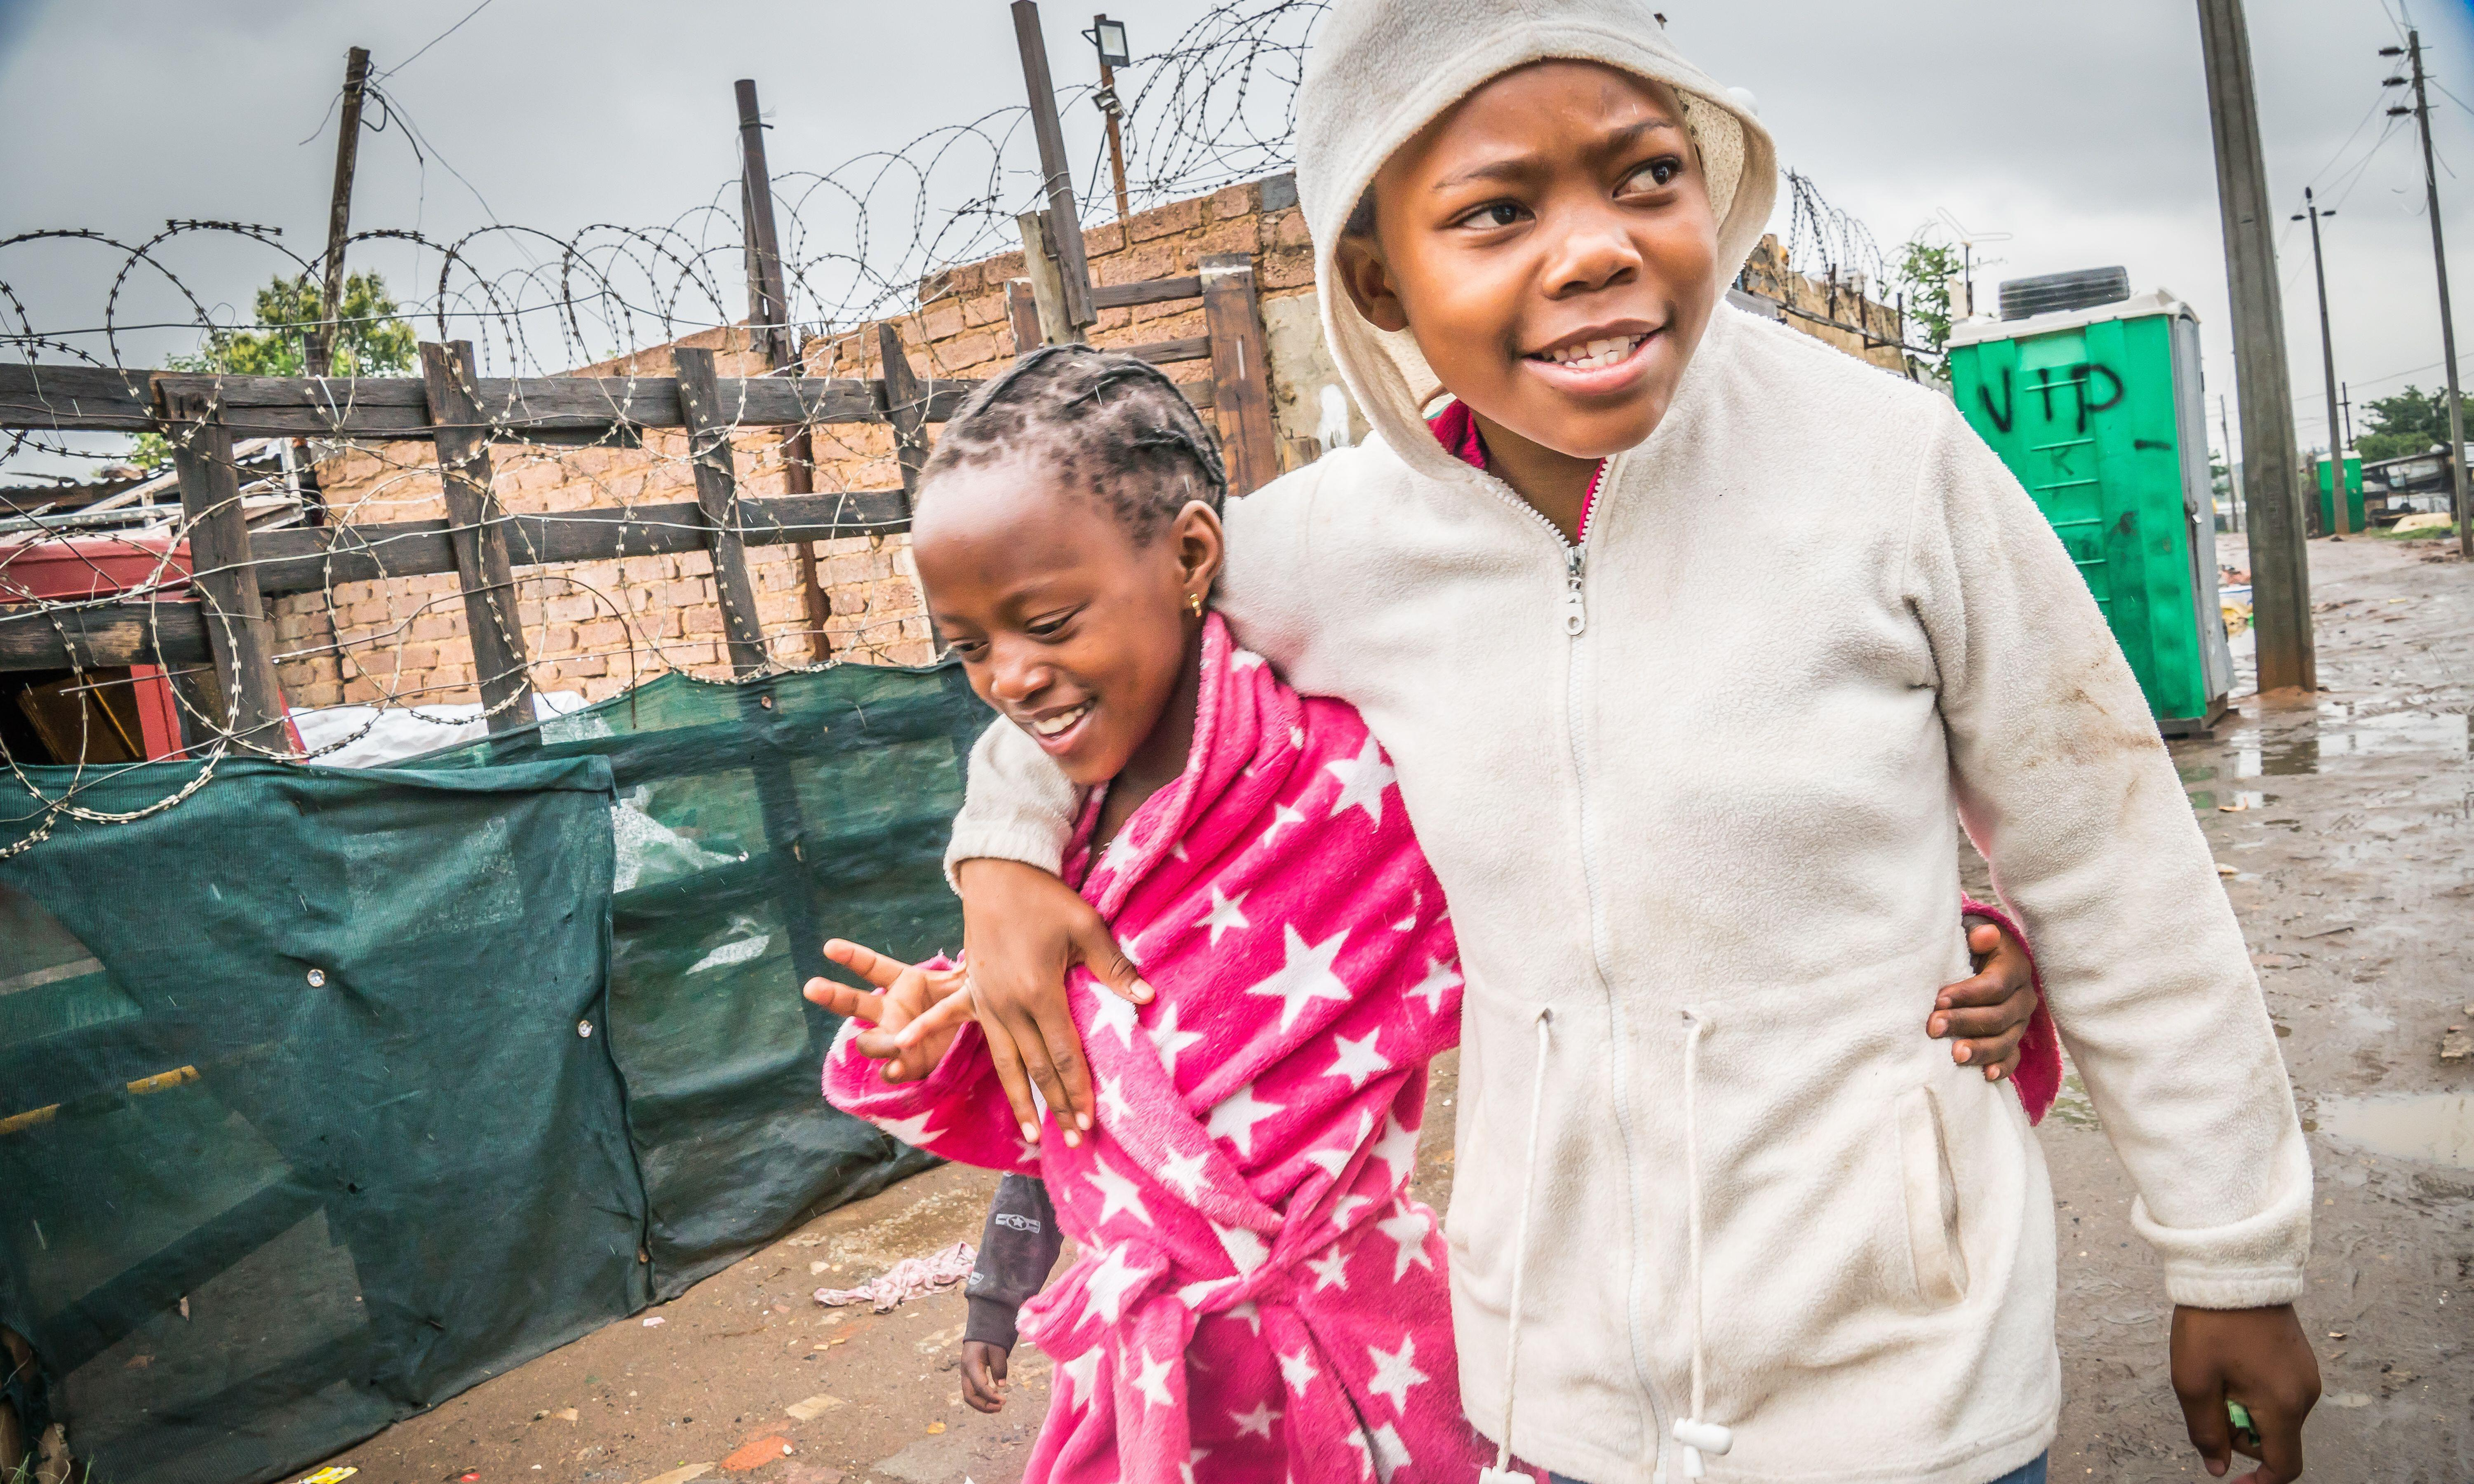 Crime, power cuts, poverty: 30 years on, the townships question Nelson Mandela's legacy